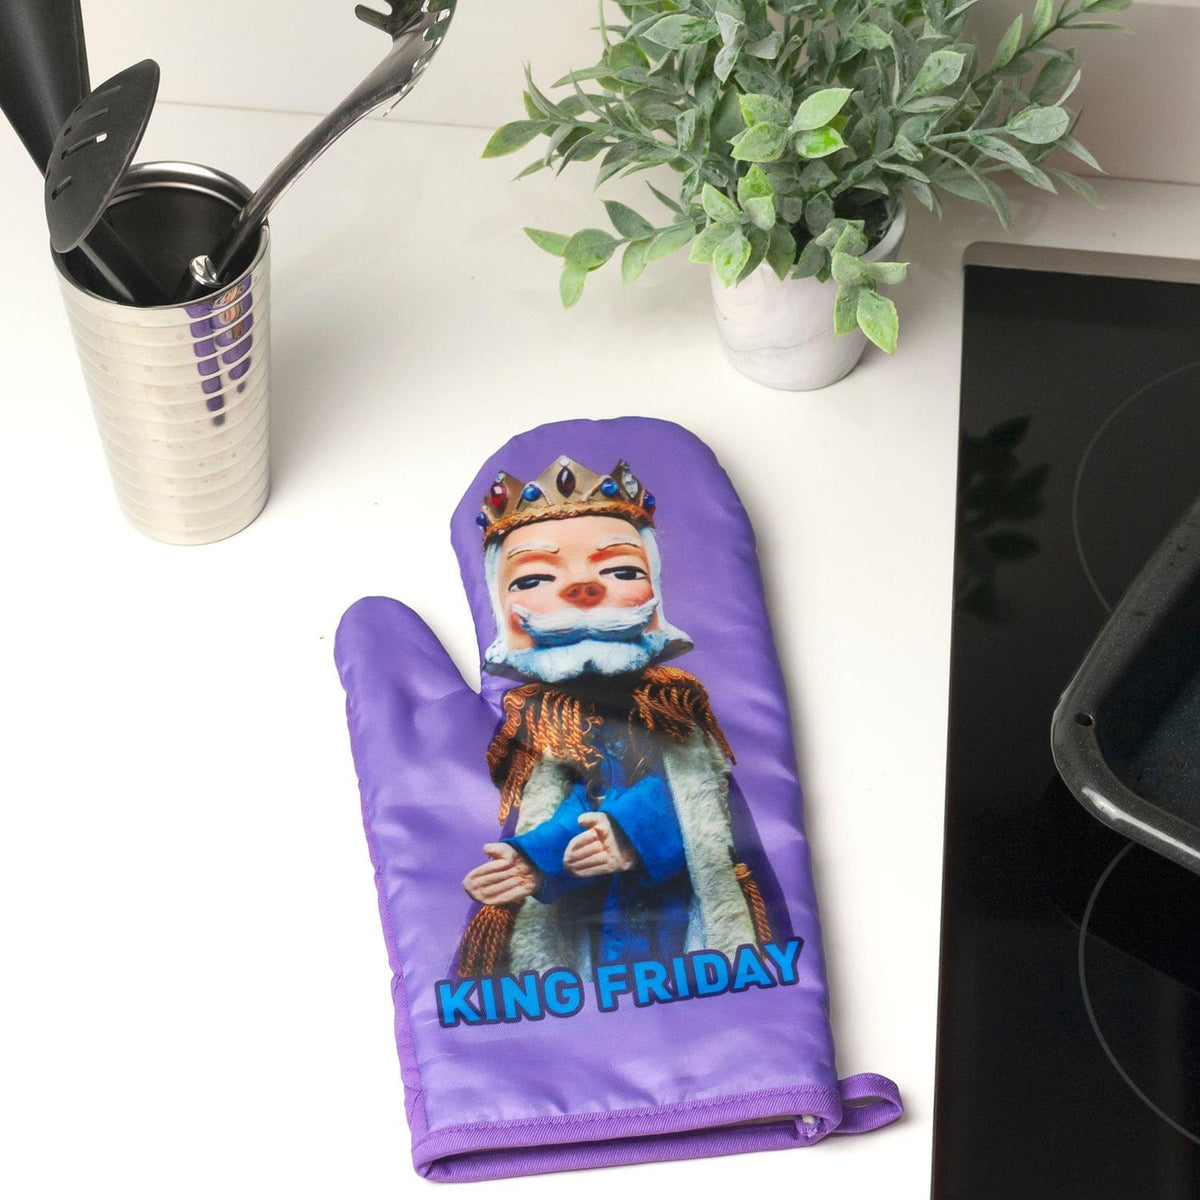 Mister Rogers Neighborhood King Friday Puppet Oven Mitt | TV Show Merchandise